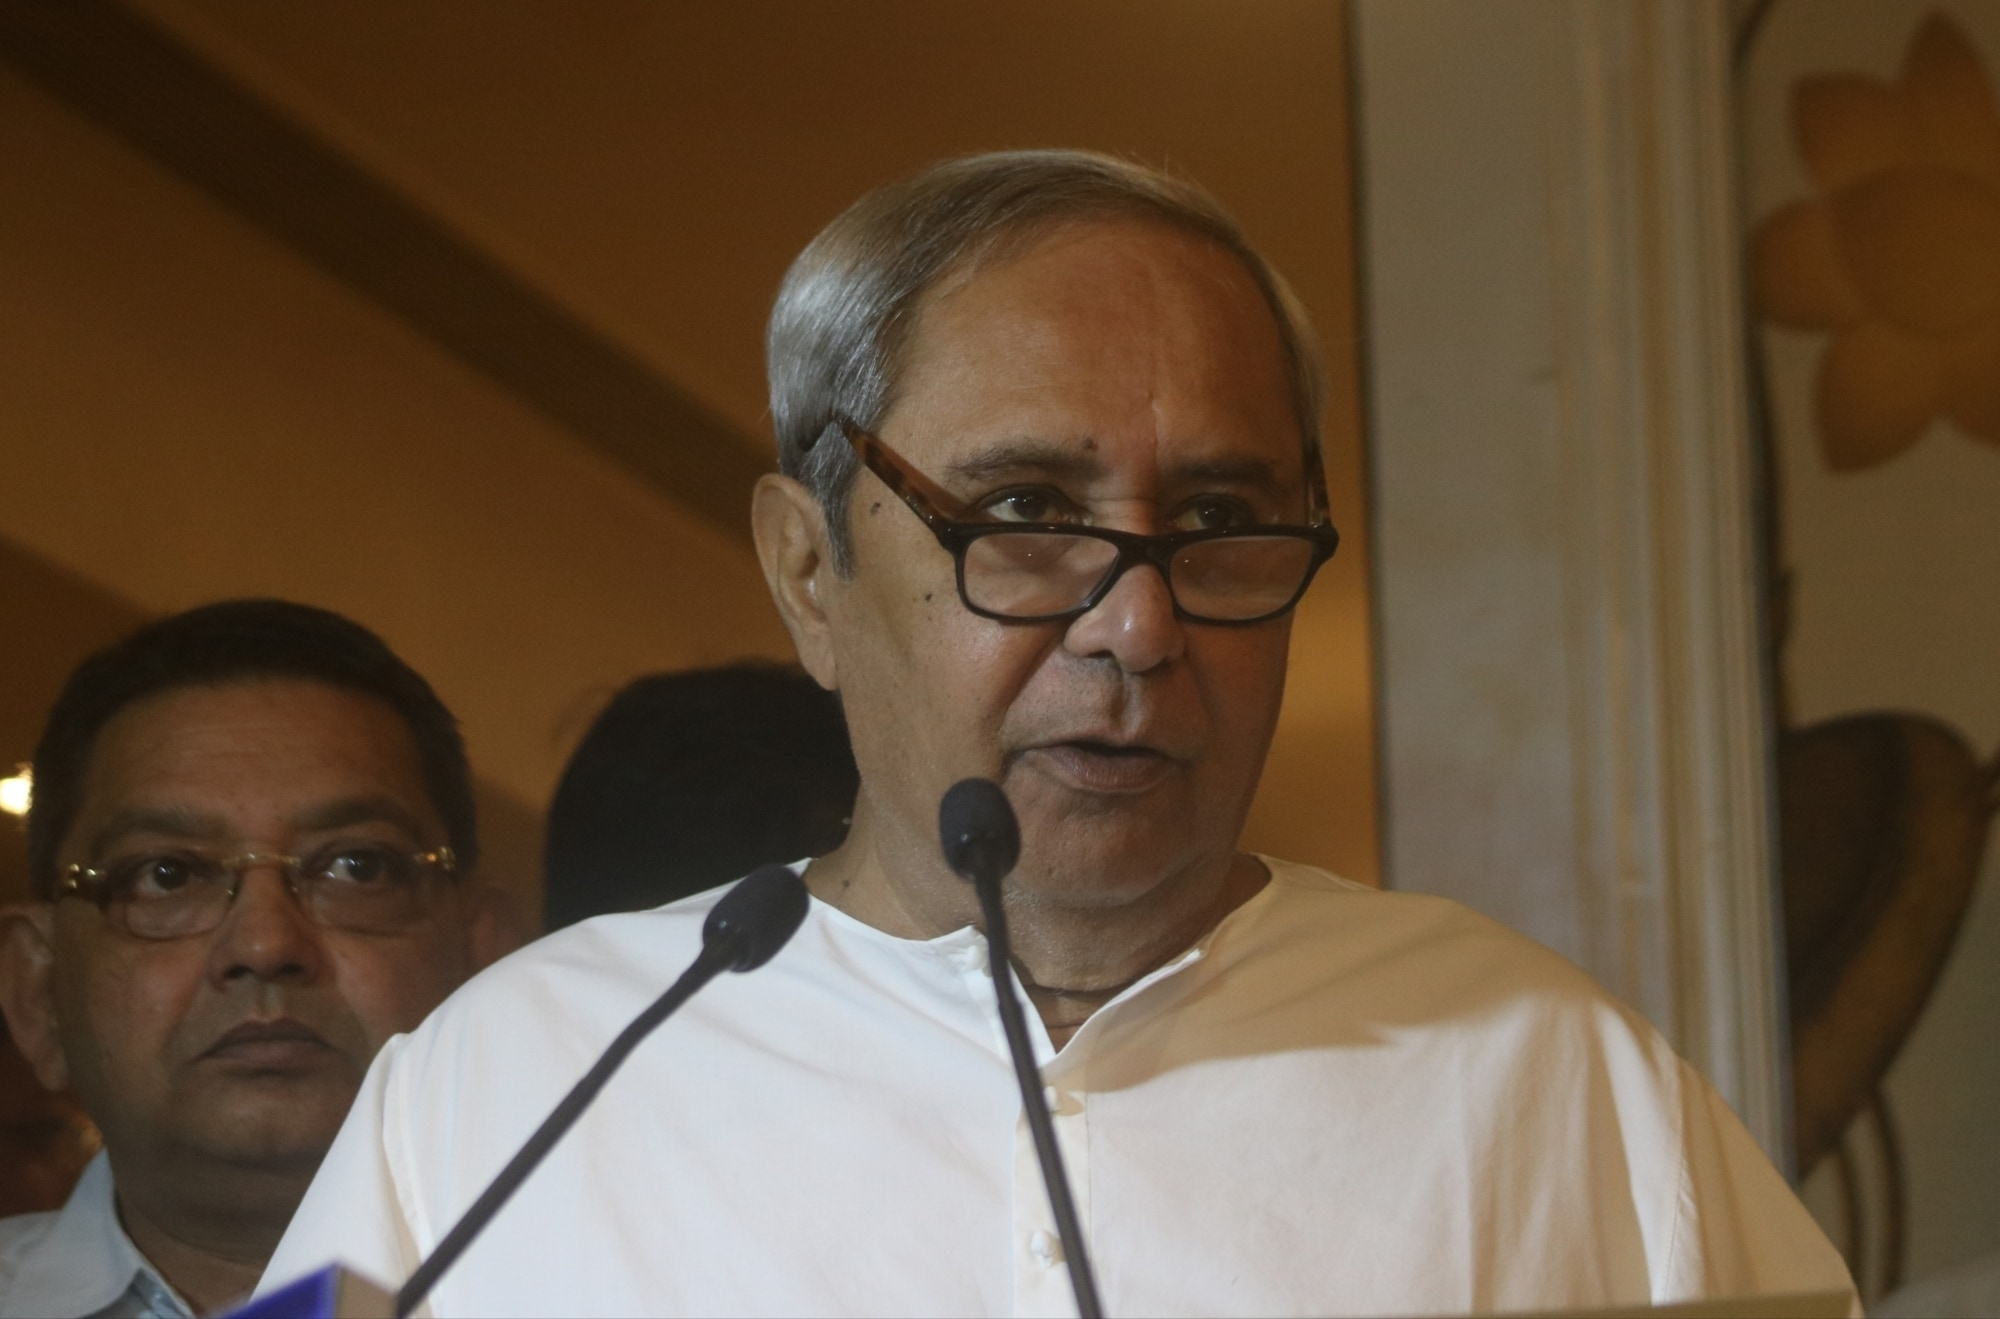 Another person to react positively to the budget was Odisha's CM Naveen Patnaik. The CM, while welcoming tax benefits for middle and lower income groups and direct benefit transfer to both farmers, added that the latter would have got more benefit if quantum of assistance was equal or more than that provided by the KALIA Scheme in Odisha.